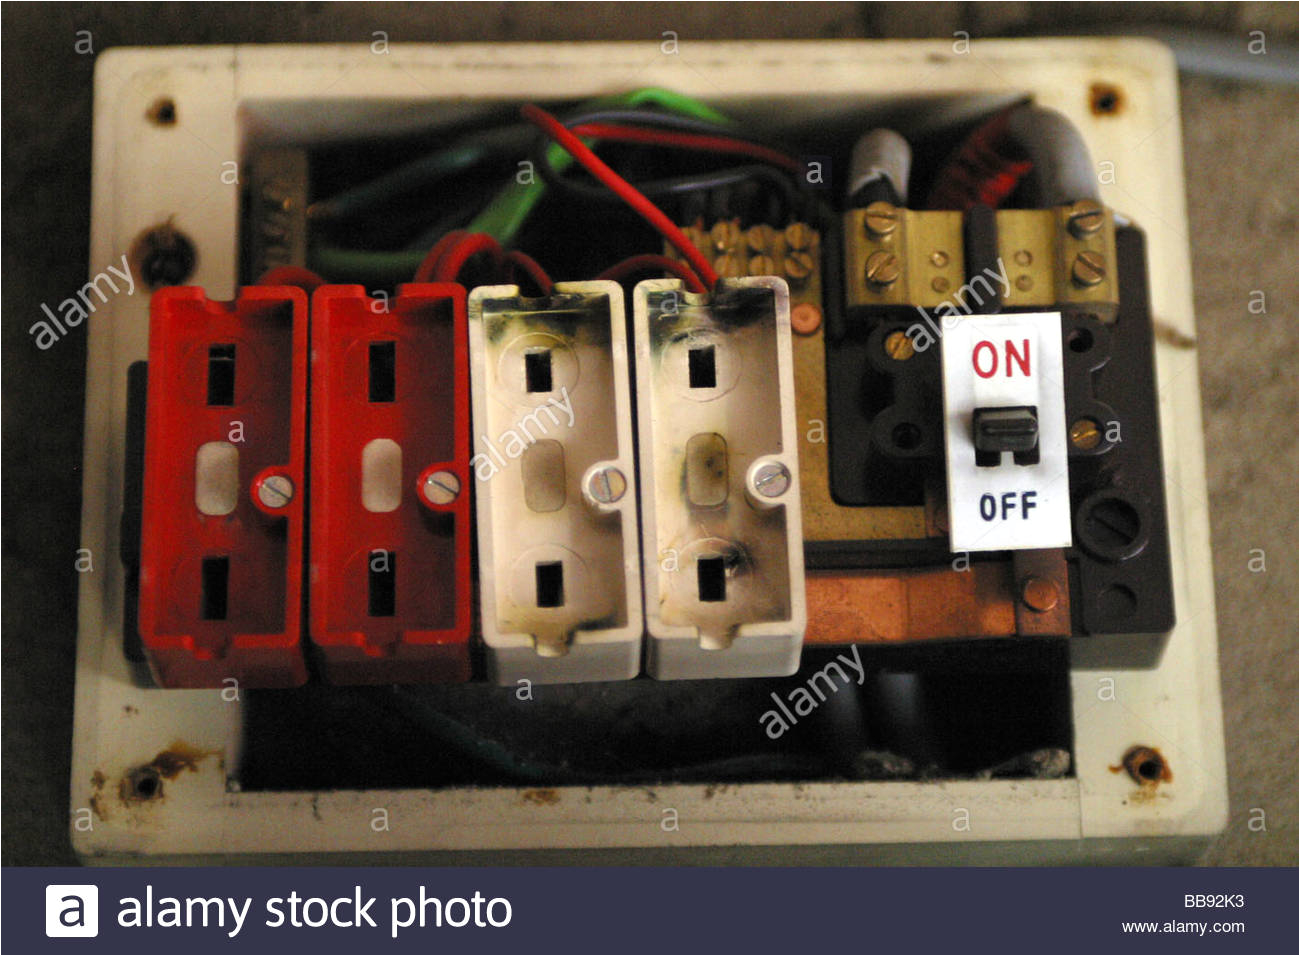 old c85 box fuse stylechevy wiring diagram option old style chevy c85 fuse box